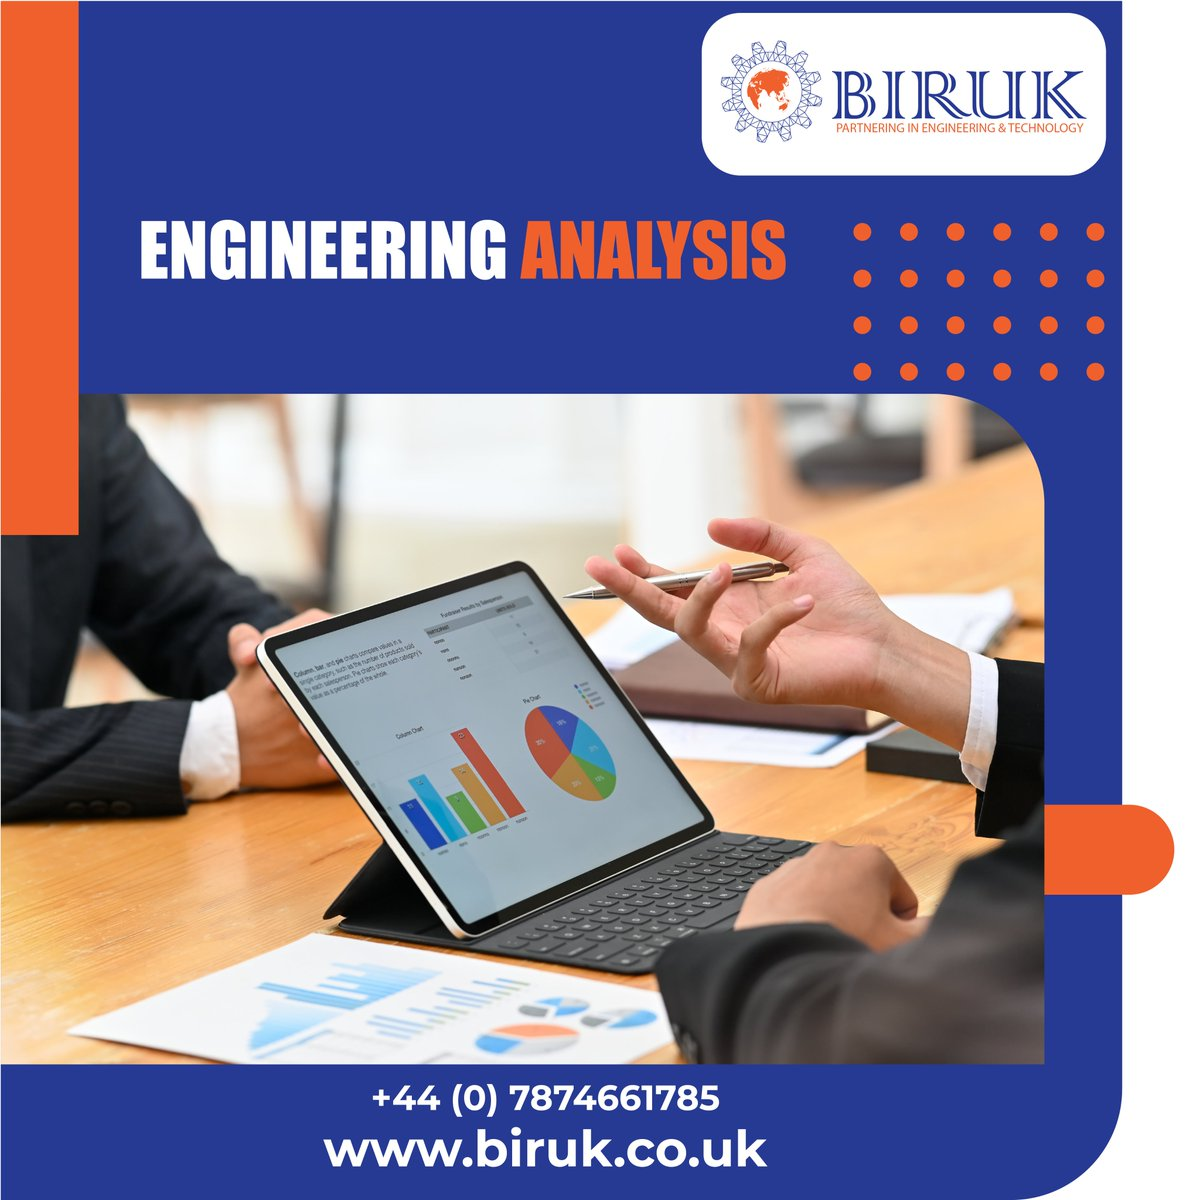 Engineering Analysis-Strive for perfection! Visit http://www.biruk.co.uk  to know more. #biruklimited #engineeringanalysis #engineeringsolutions #digitalmarketingservices #engineeringdesign #Webdesignerpic.twitter.com/0S5ETD39SC